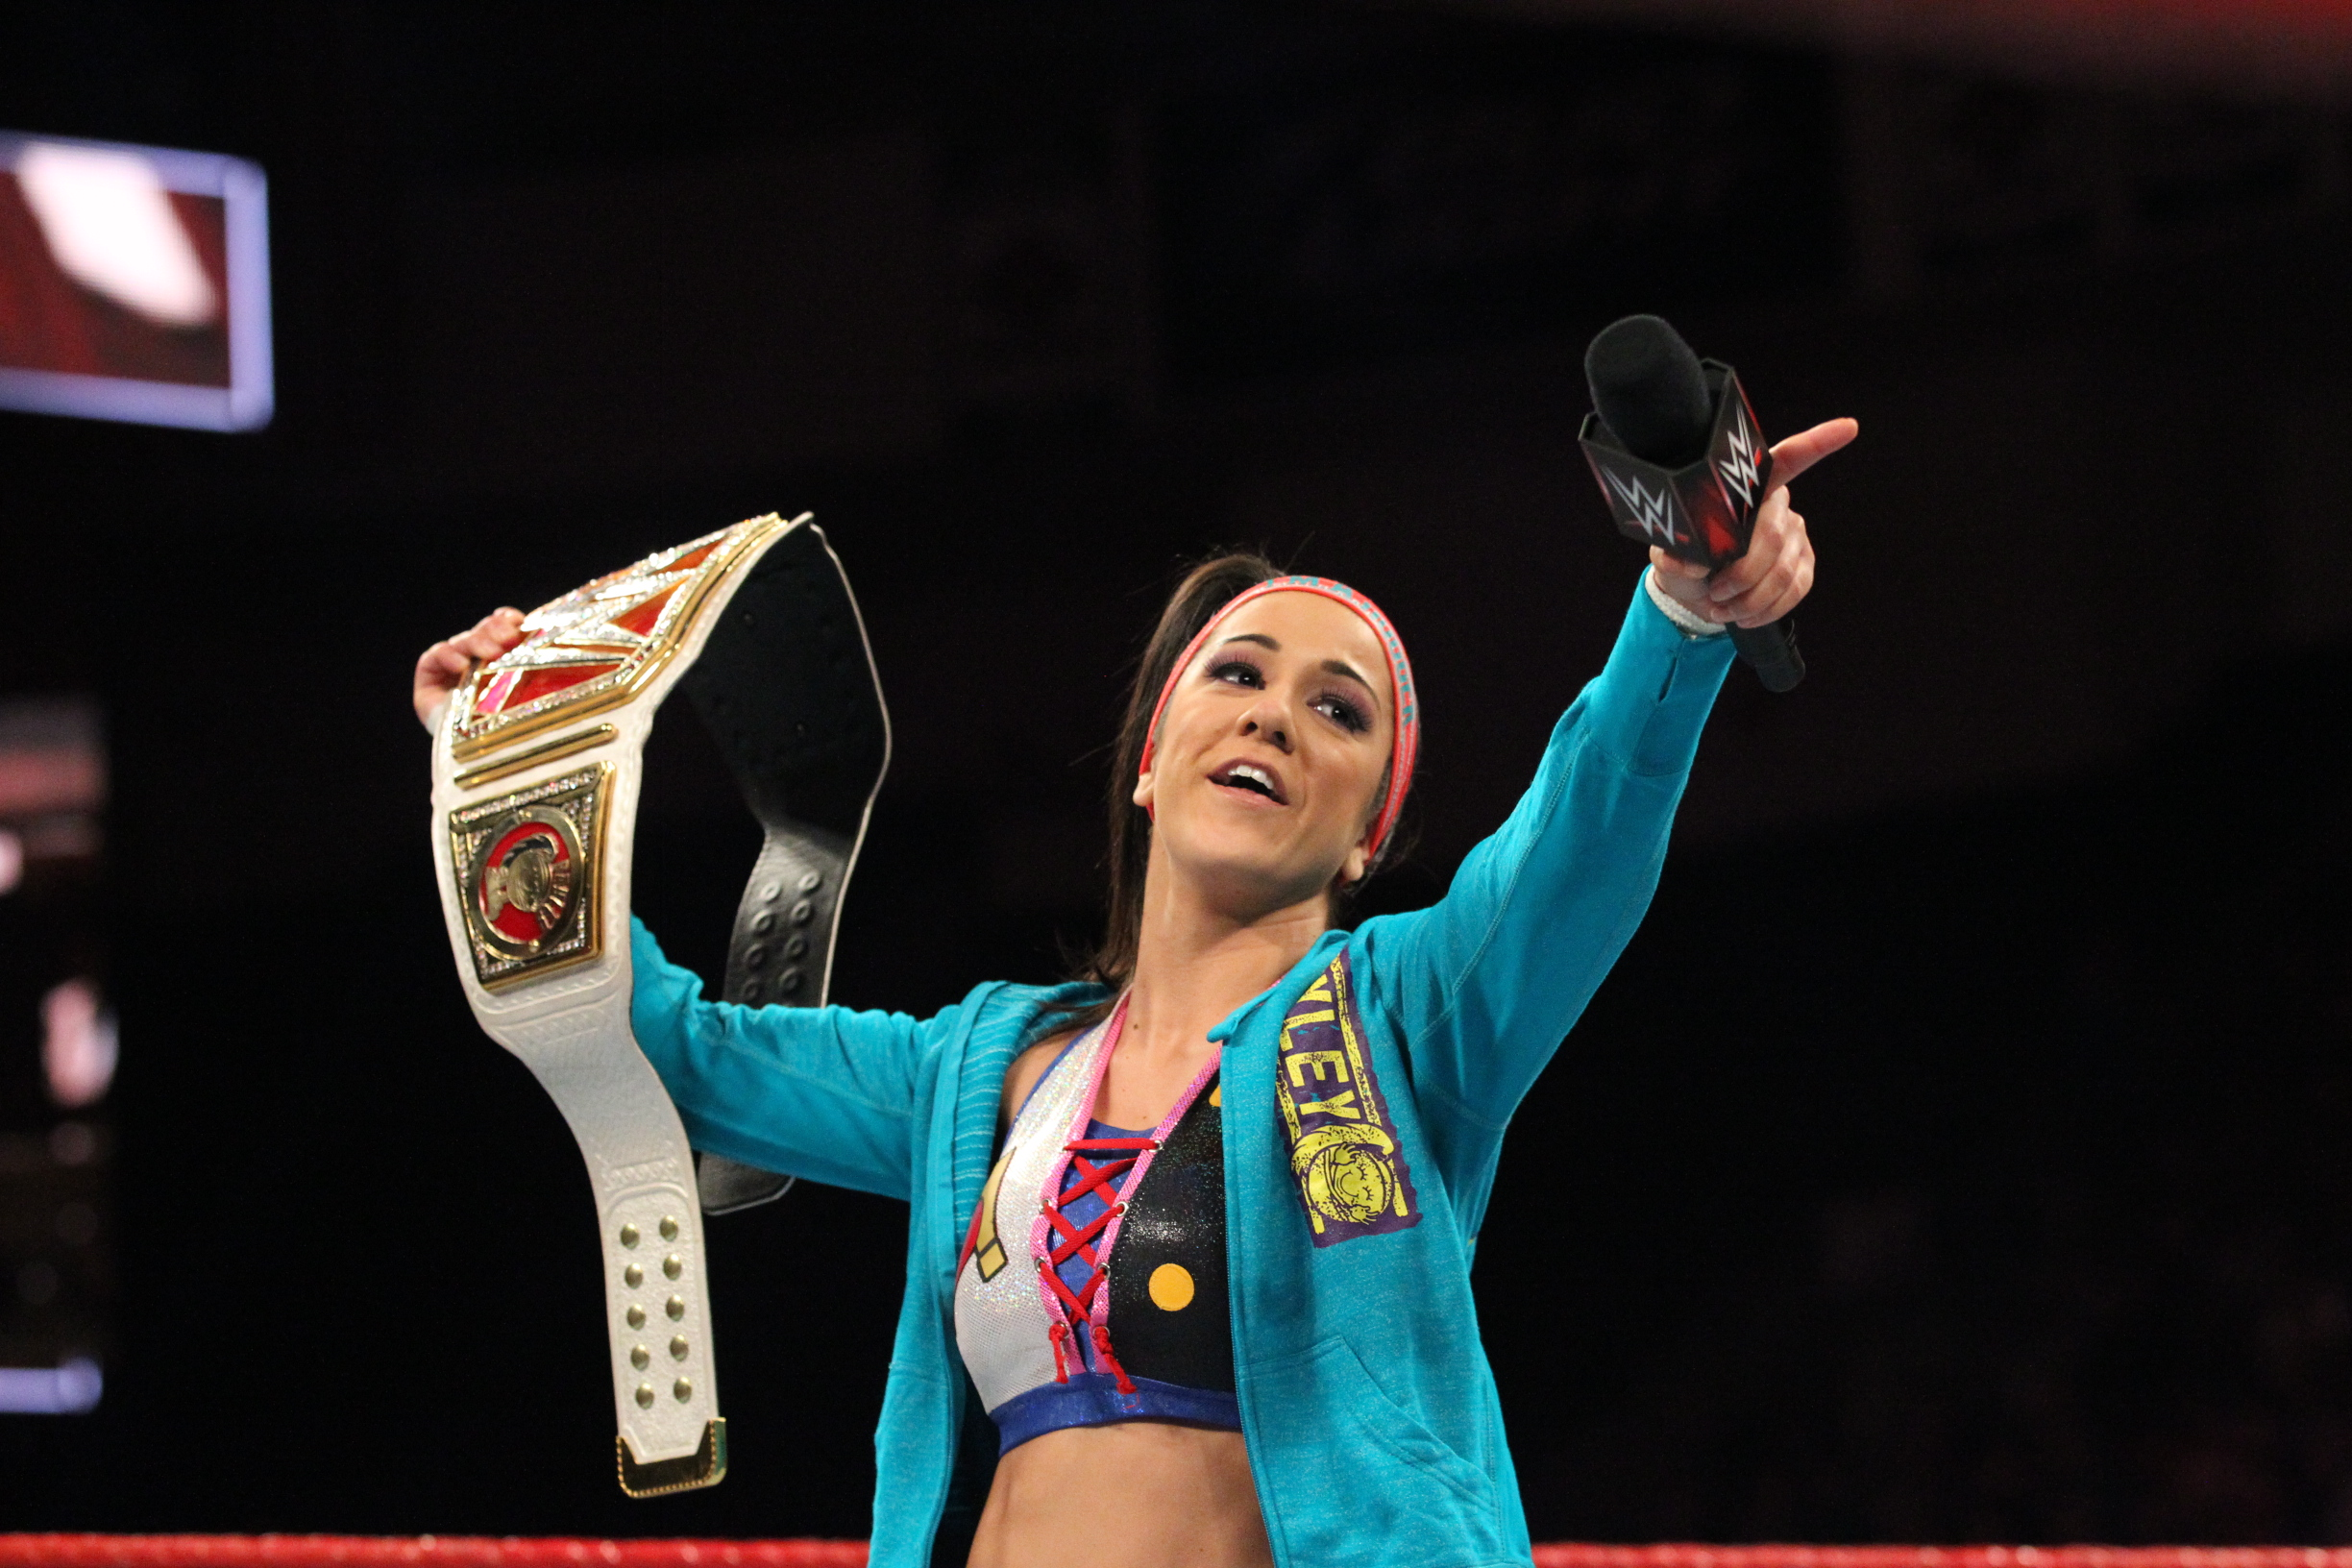 WWE wrestler Bayley in action.